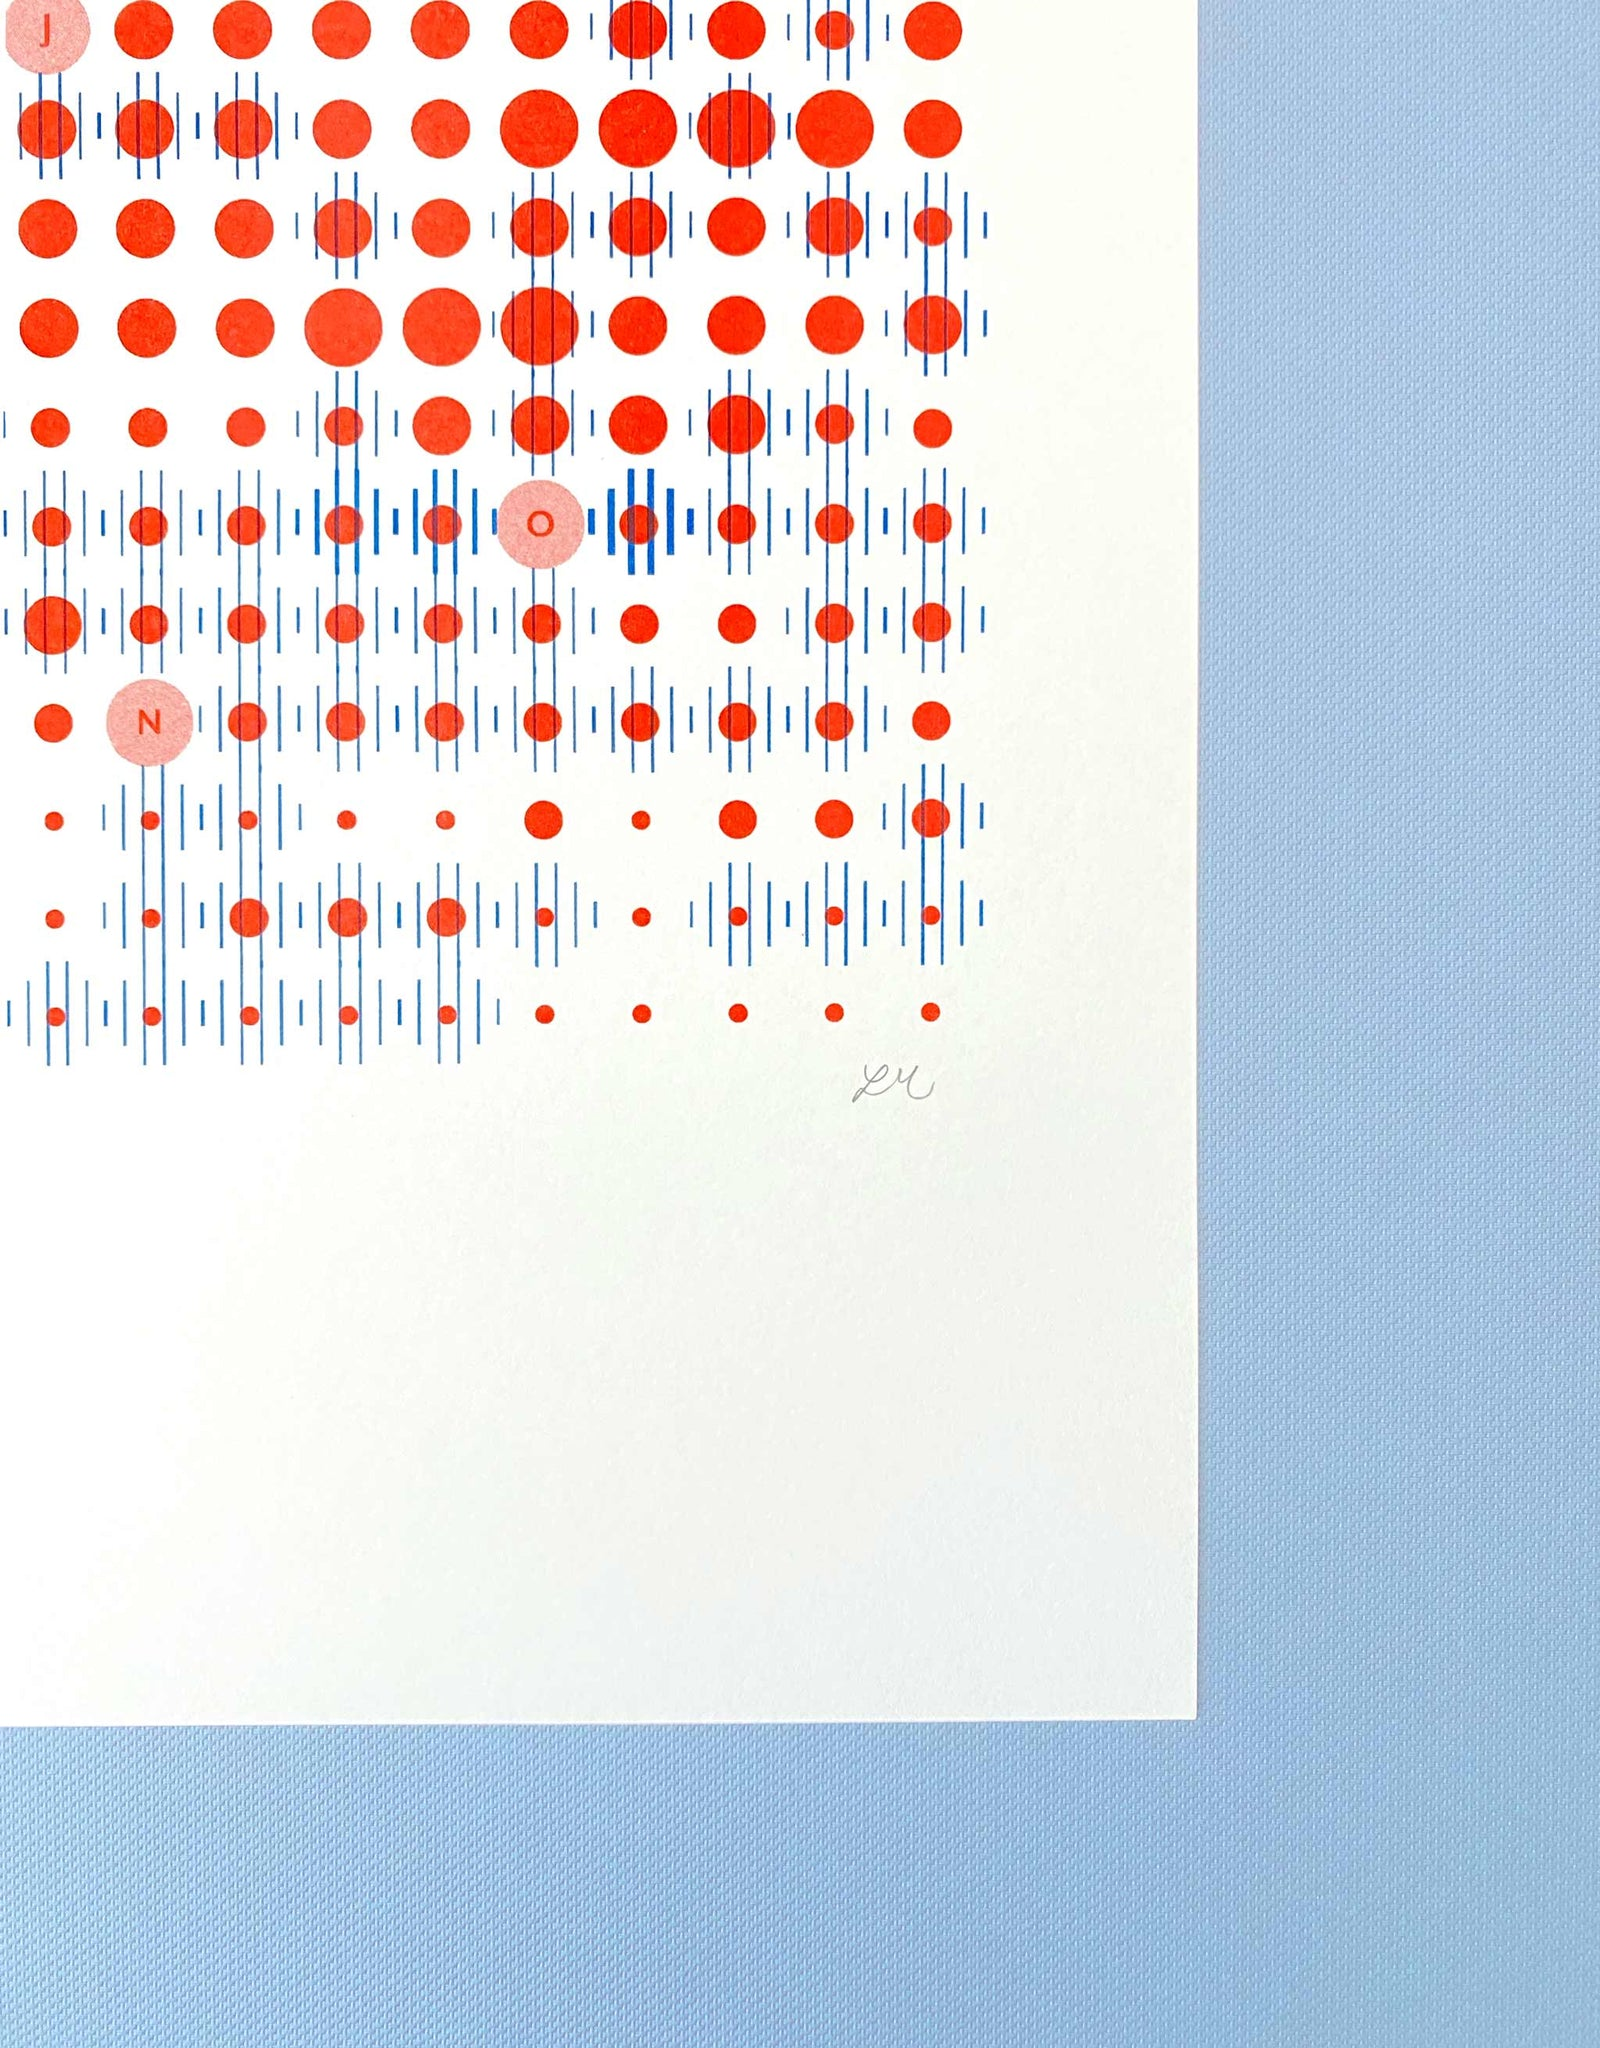 Corner detail with signature. Data-visualisation print of Amsterdam weather patterns in blue lines and red dots in grid formation on white paper.